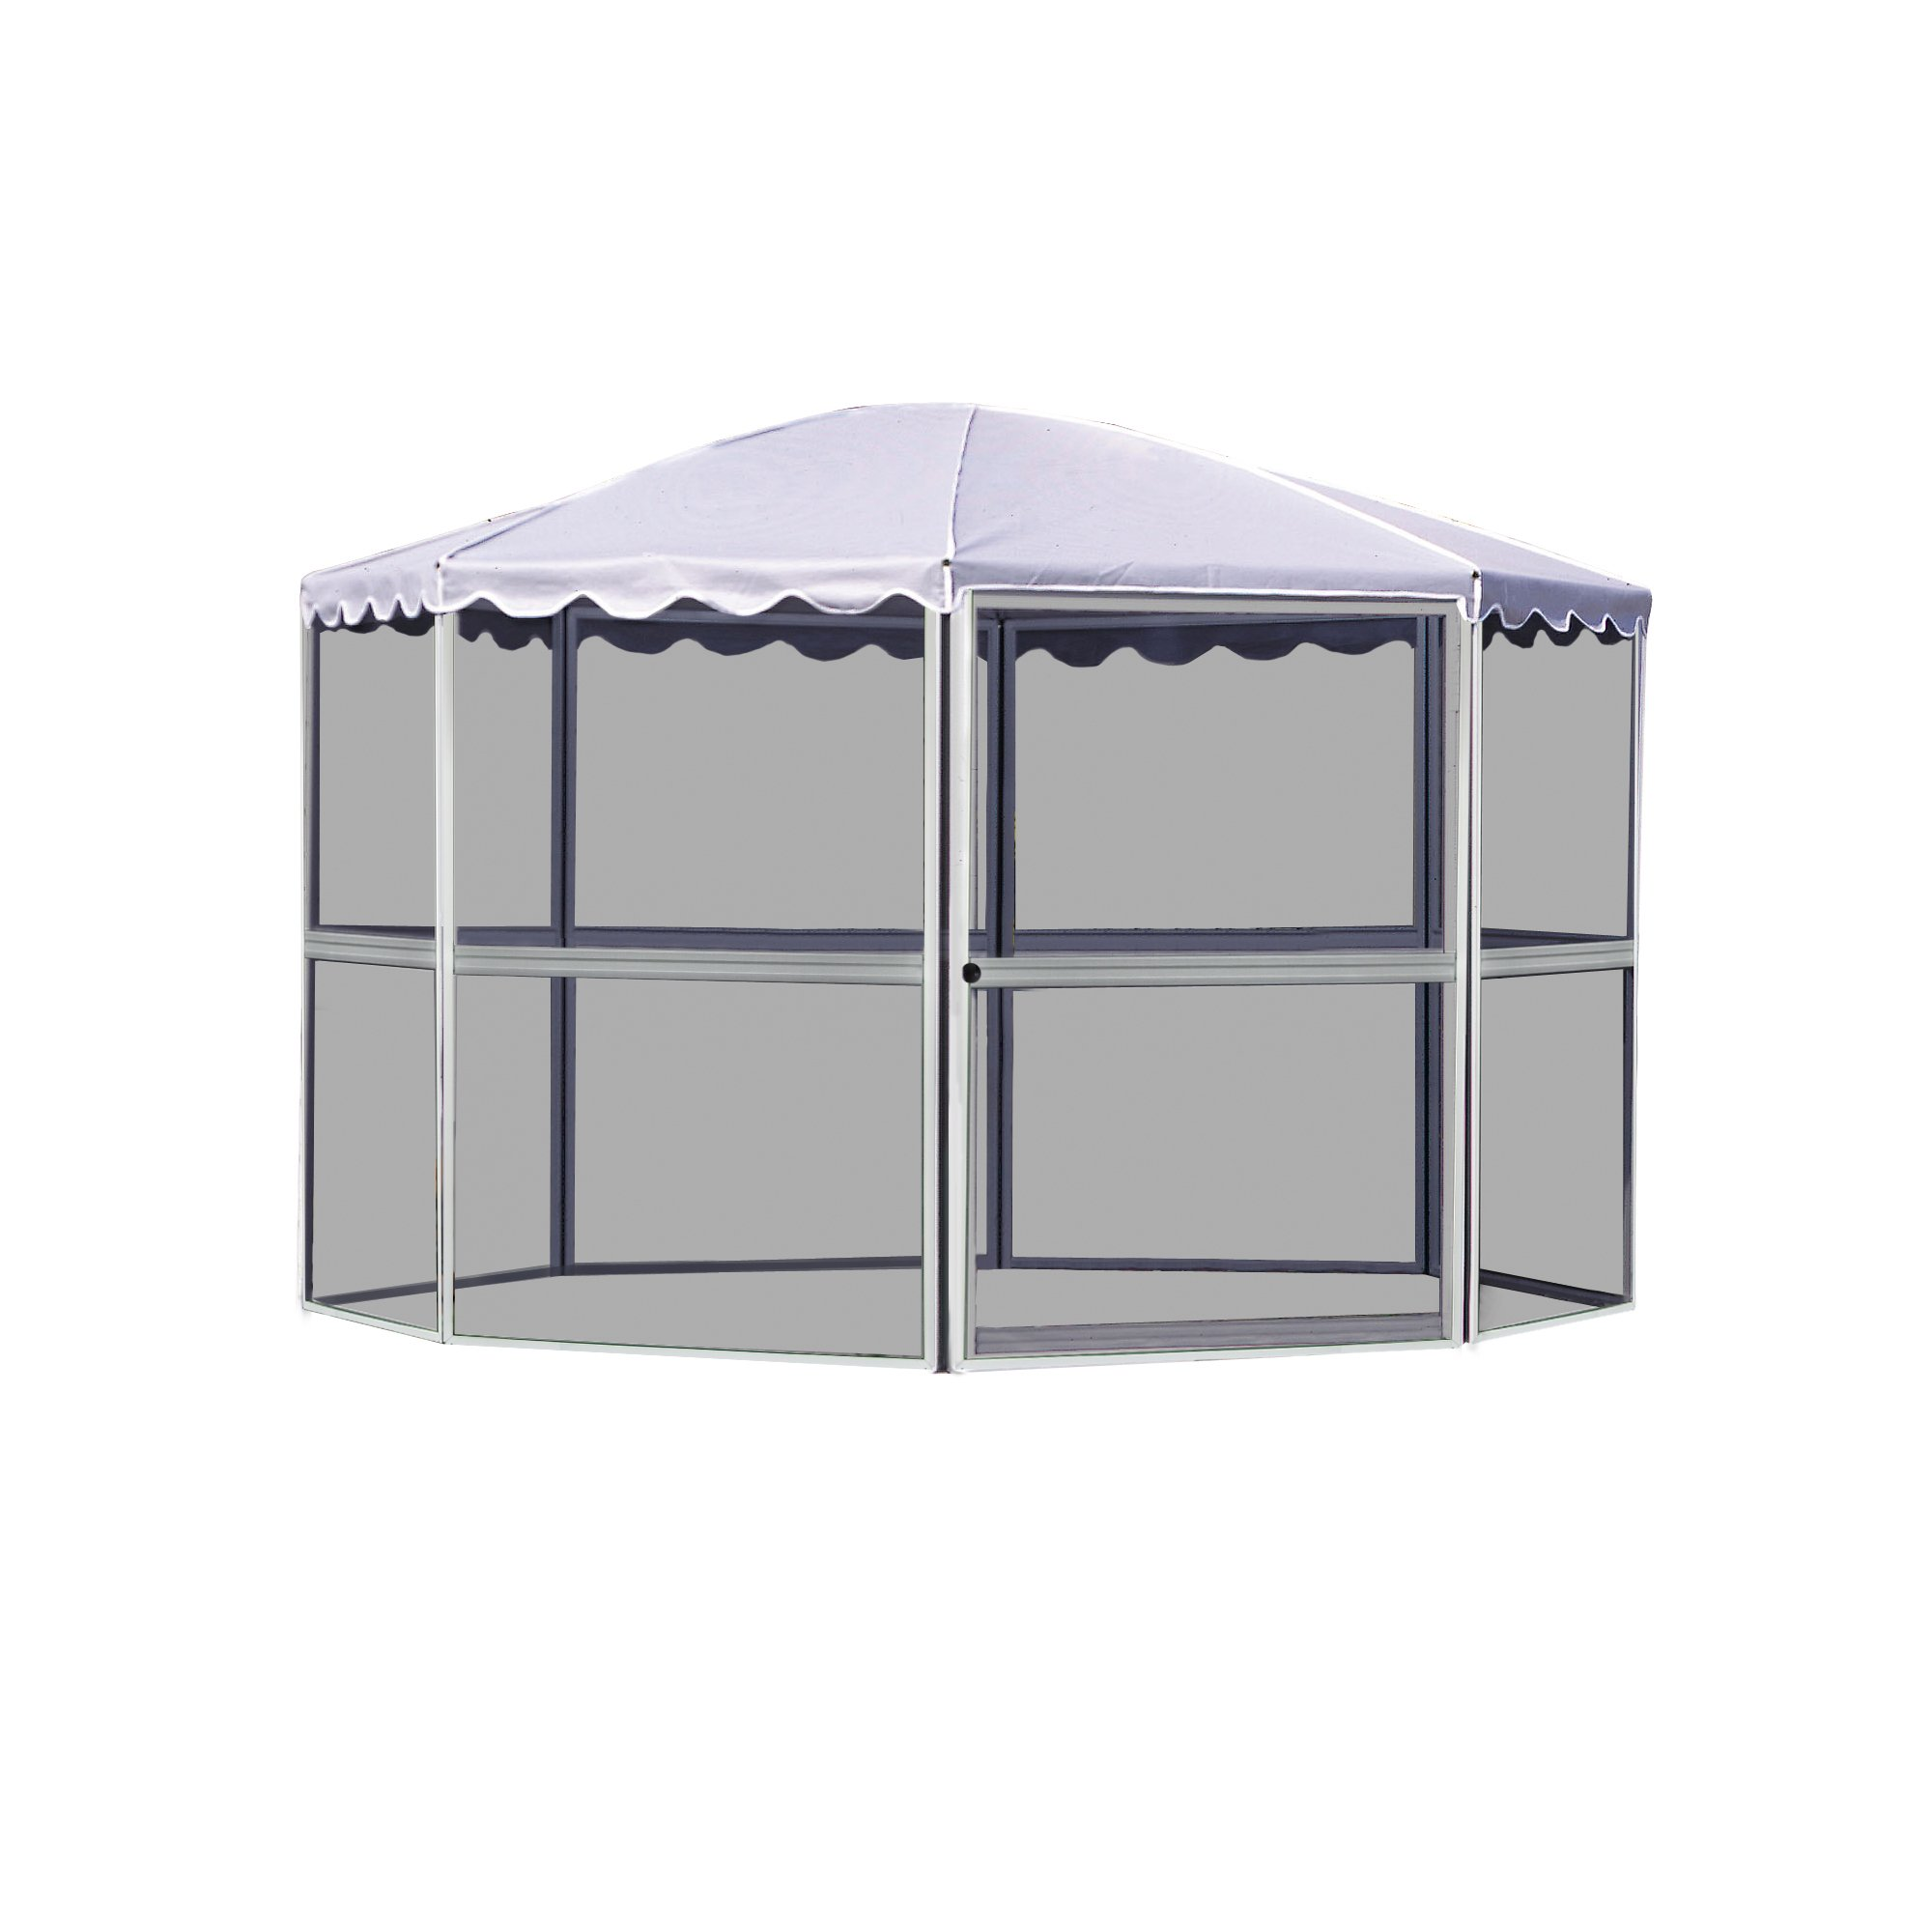 Casita 8-Panel Round Screenhouse 83222, White with Gray Roof